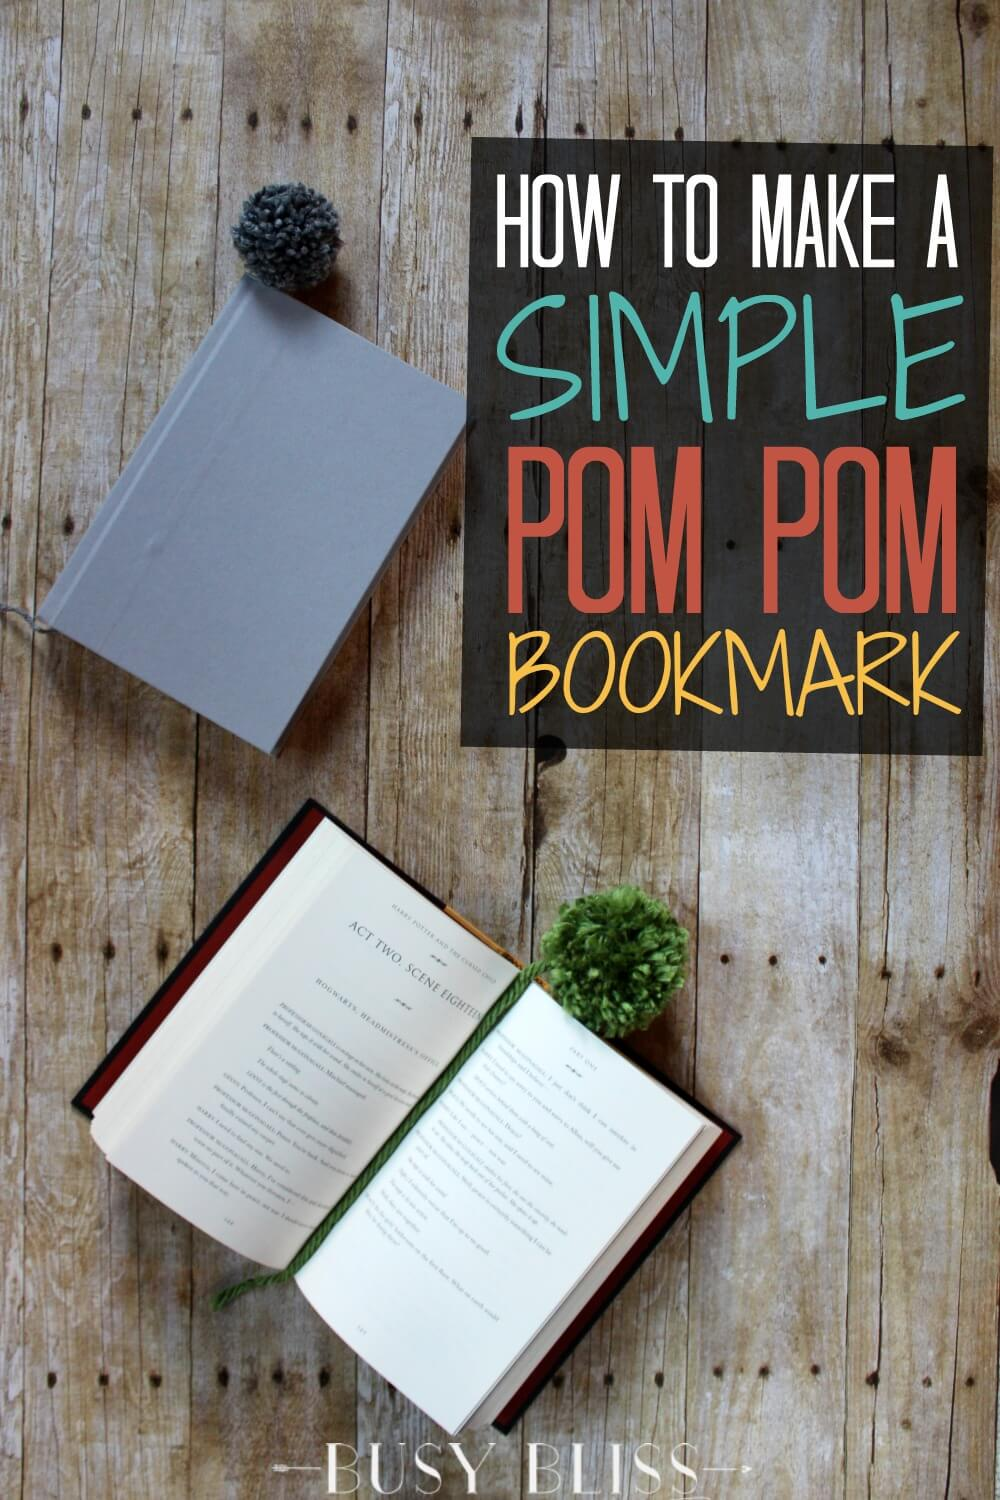 Add the perfect amount of whimsy to reading time with a DIY pom pom bookmark. This tutorial walks you through how to make this fun and simple project!